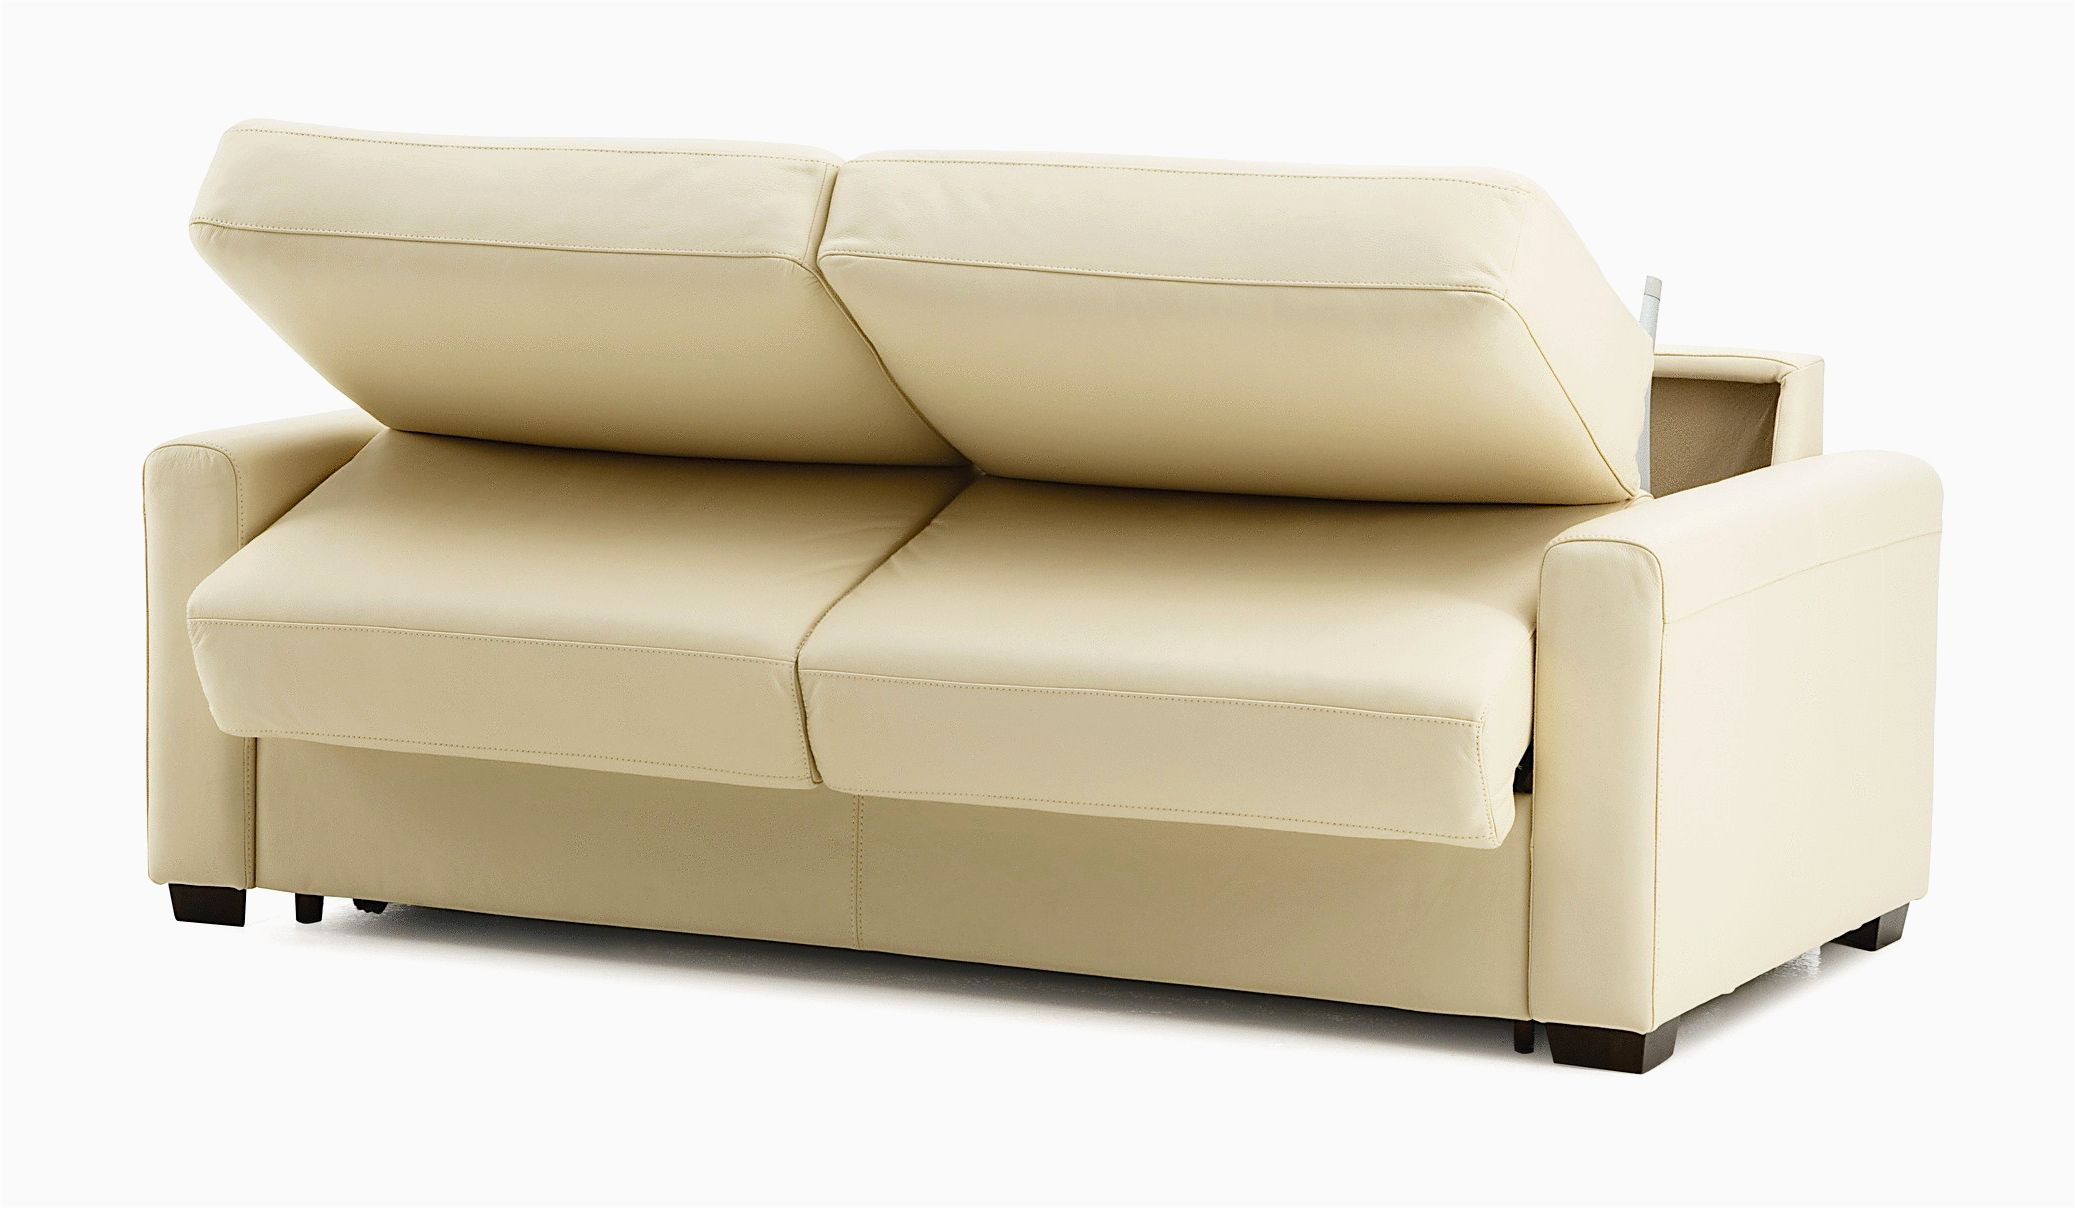 beautiful queen size sofa bed decoration-Sensational Queen Size sofa Bed Concept